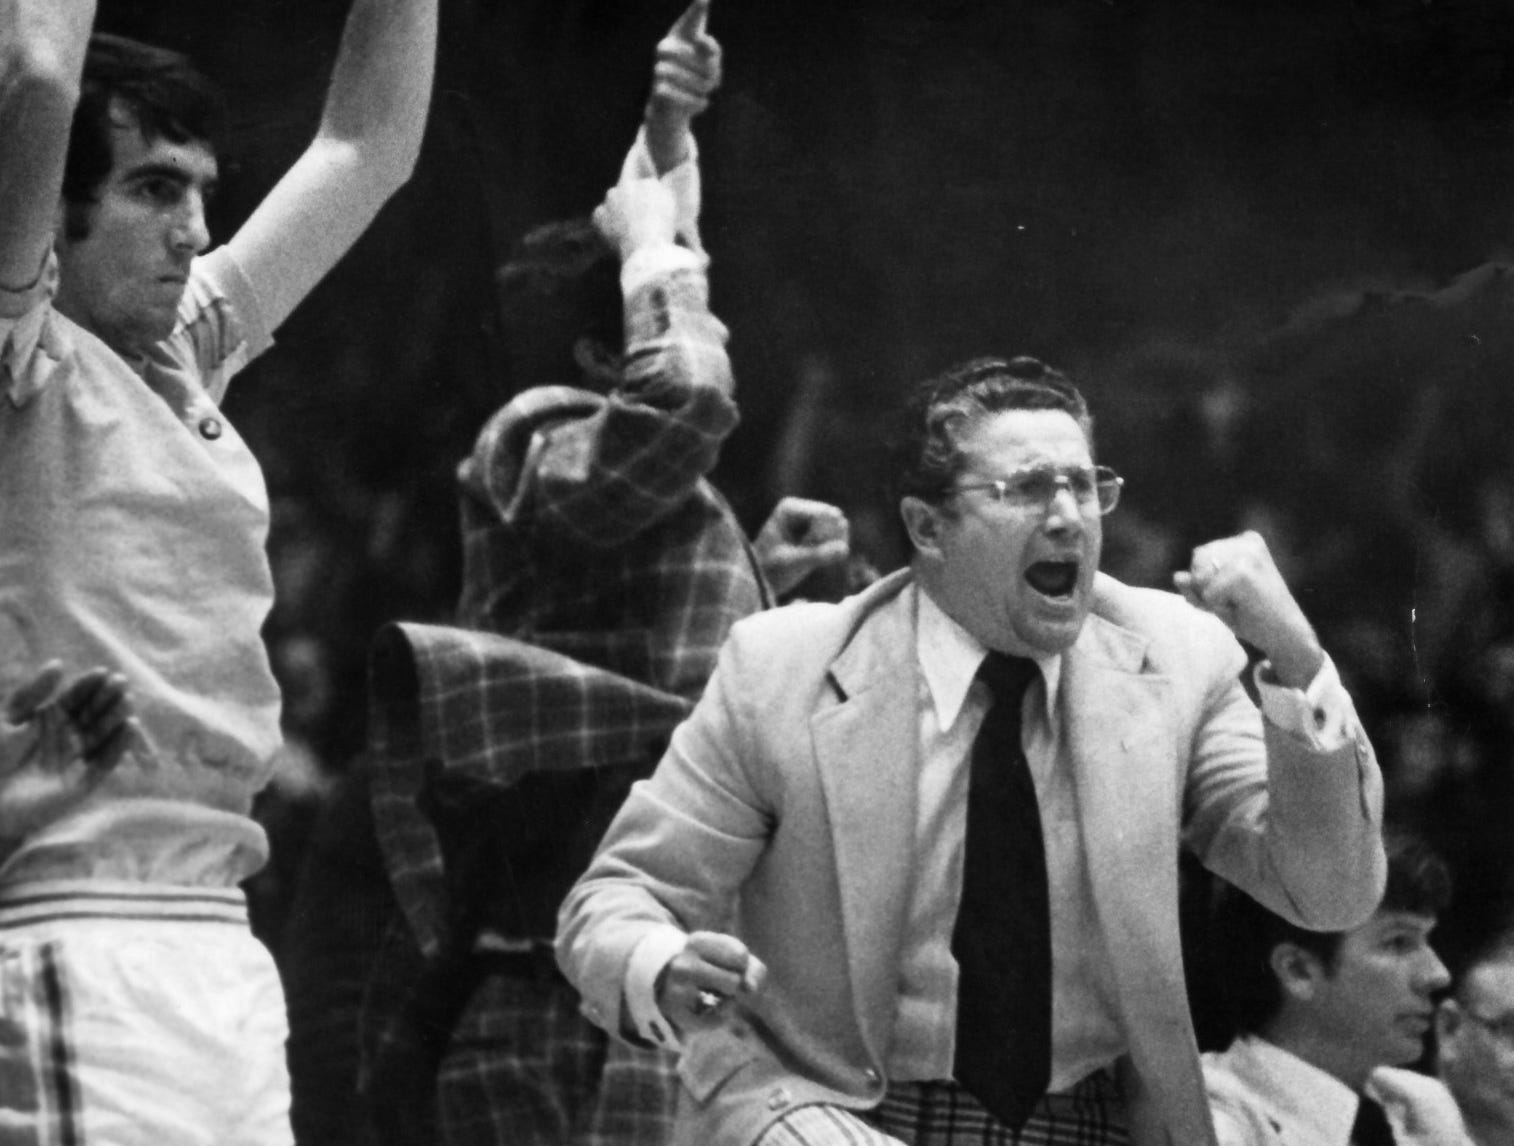 University of Tennessee basketball Coach Ray Mears gets excited during a game in 1974 at Stokely Athletic Center. (News Sentinel Archive)